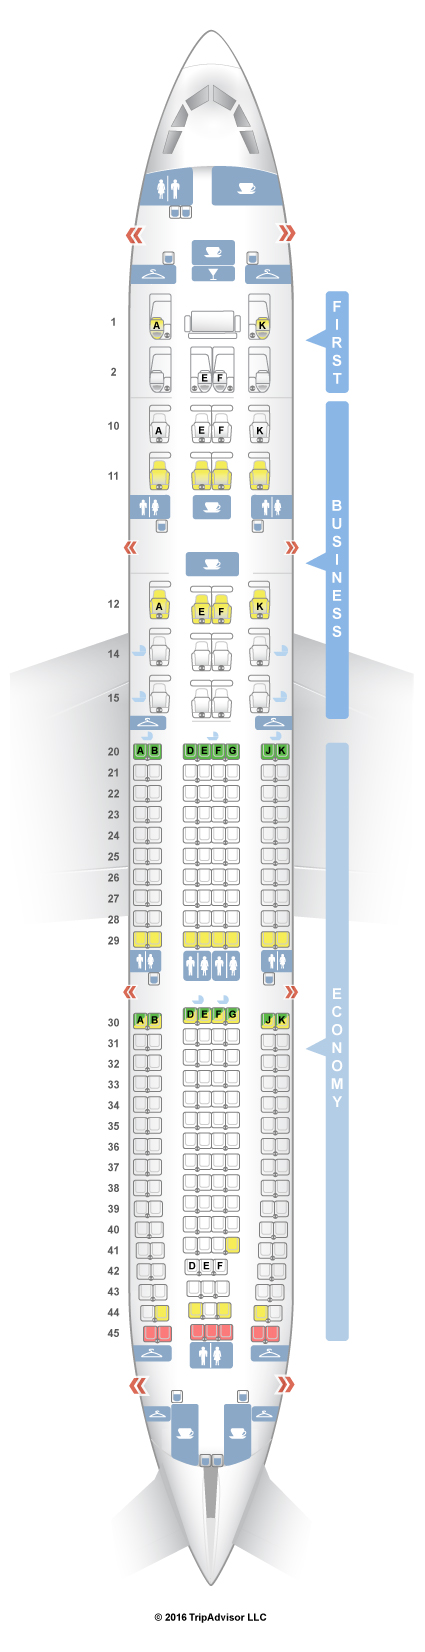 Delta Airbus A321 Seating Plan | Elcho Table on airbus a320 100 200 seat map, jetblue airbus a320 seat map, delta 76w business class seats, delta airbus a332 seating-chart, frontier airbus a320 seat map, airbus industrie a320 seat map, delta airbus a330-300 333 seating-chart, a 320 seat map, boeing 757-200 seat map, aer lingus airbus a330-200 seat map, avianca airbus a320 seat map, delta airbus a340-600 seat map, delta airline seating arrangement, hawaiian air airbus a330 jet seat map, airbus 320 seat map, delta airbus a333 seat map, delta boeing 757 passenger seats, air canada airbus a320 seat map, spirit airlines seating chart seat map,